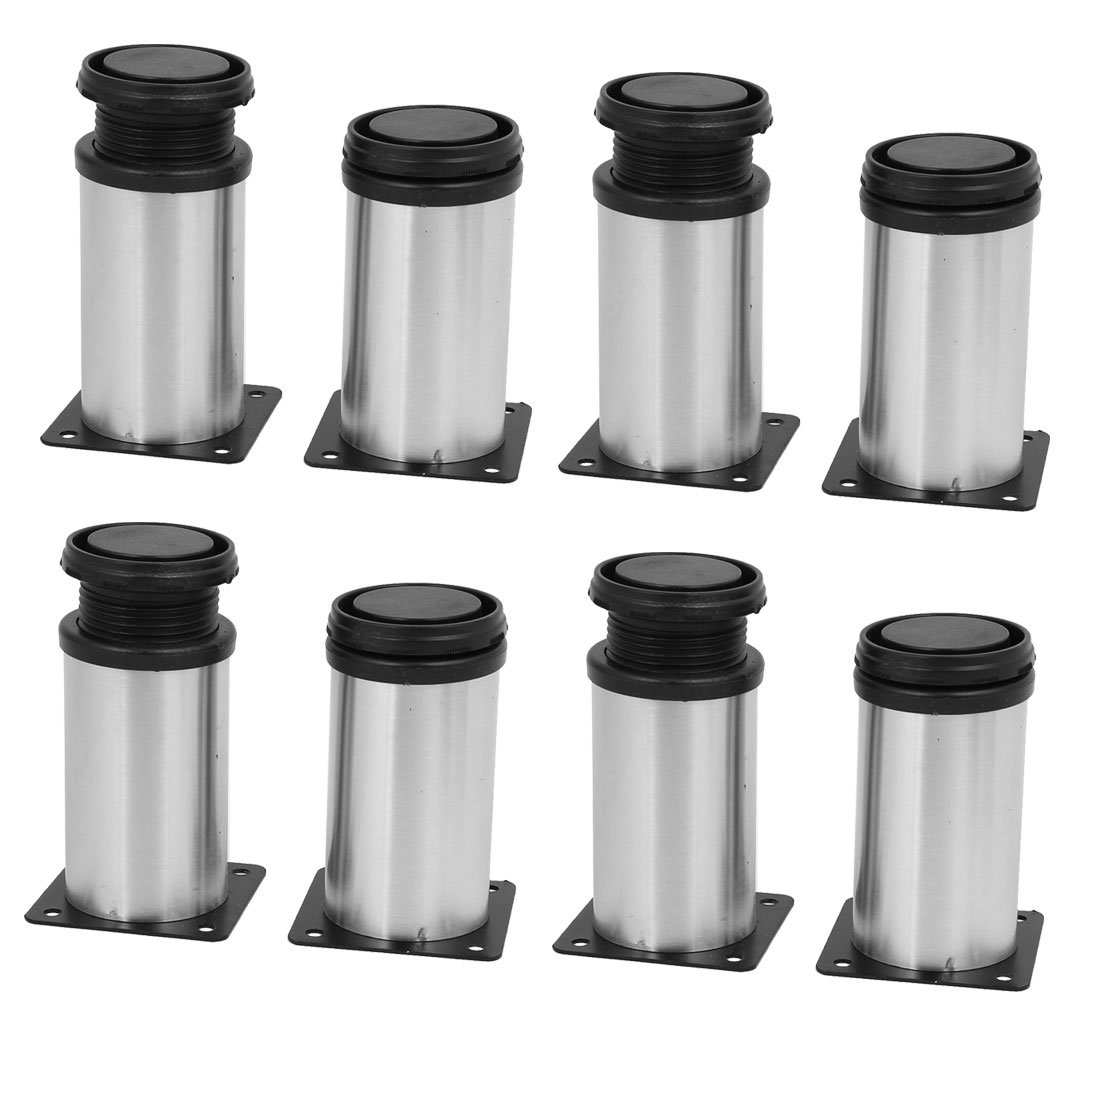 uxcell 50mm x 100mm Metal Adjustable Table Cabinet Feet Leg Round Stand 8PCS